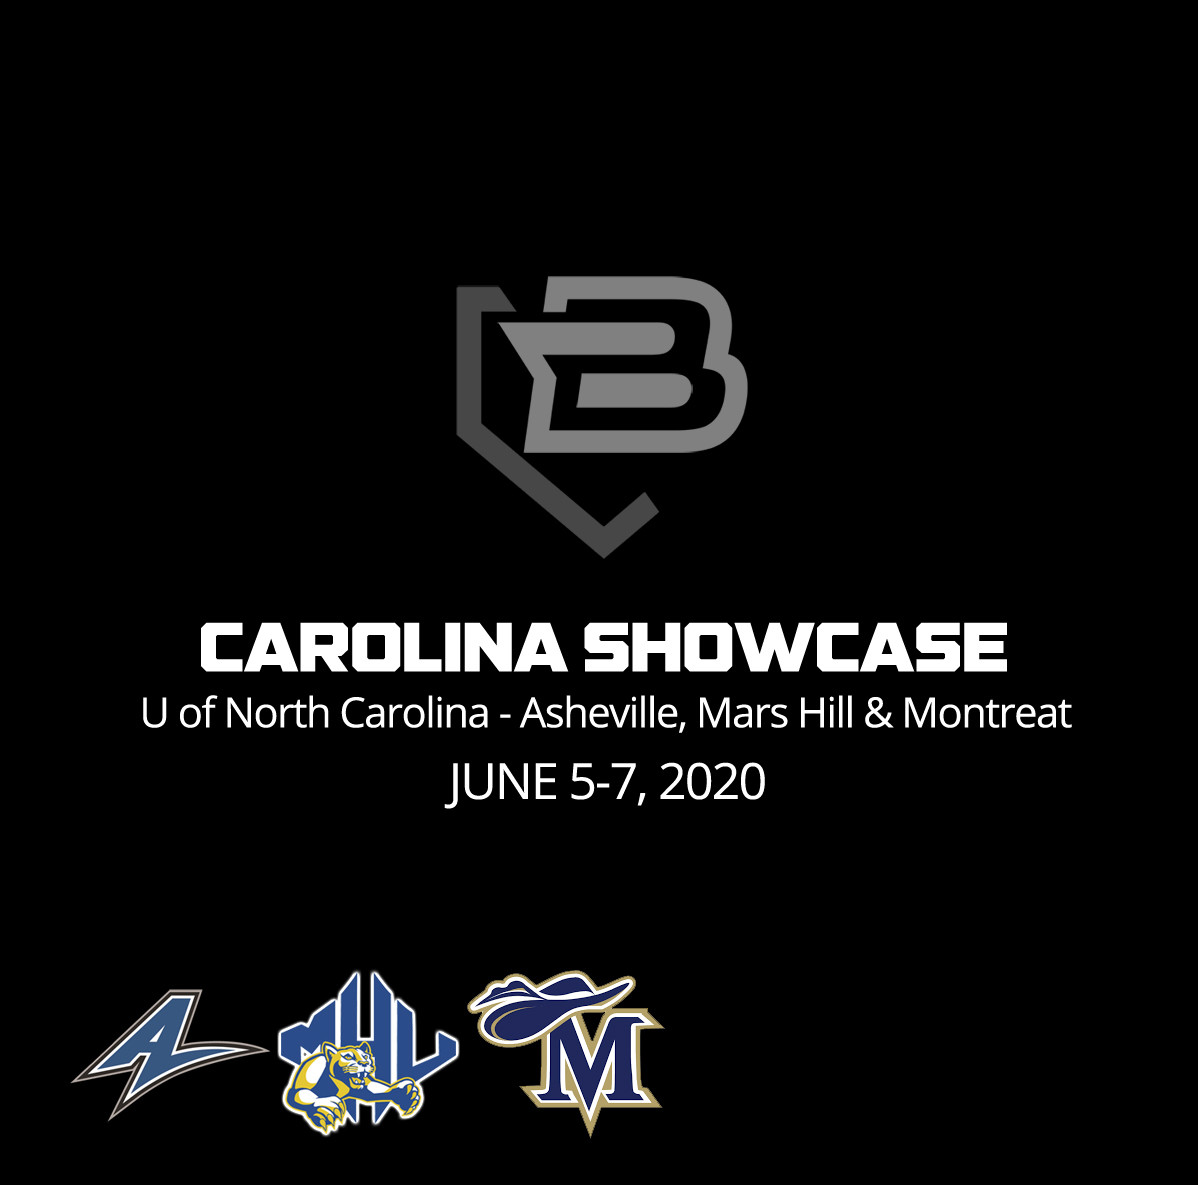 Carolina Showcase